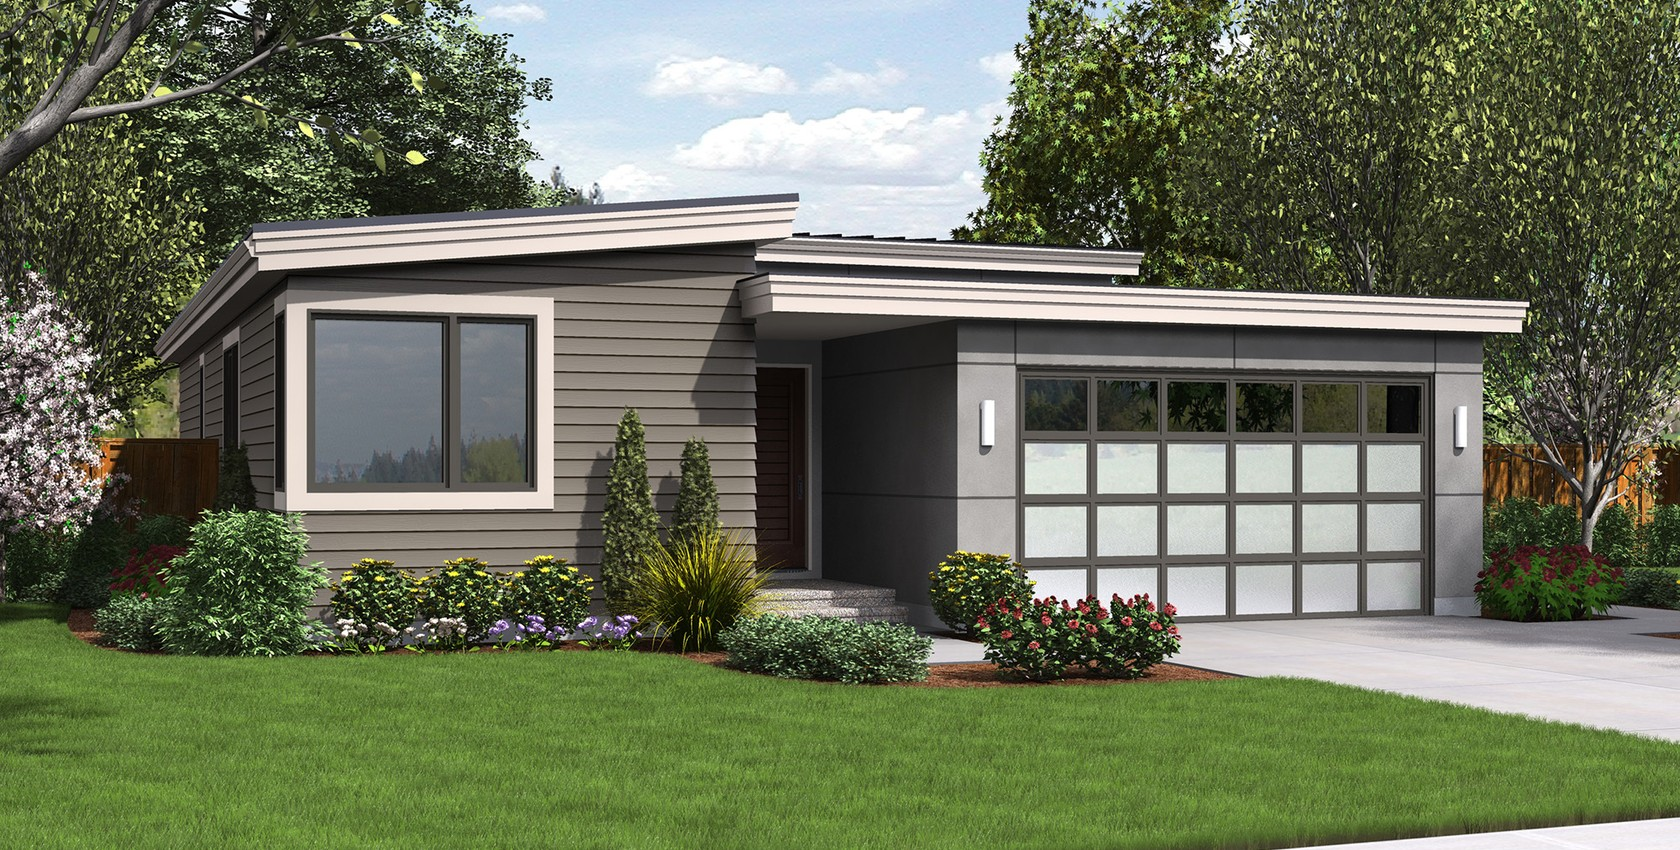 Image for Park Place-Narrow contemporary home designed for efficiency.  Excellent Outdoor connection-4082